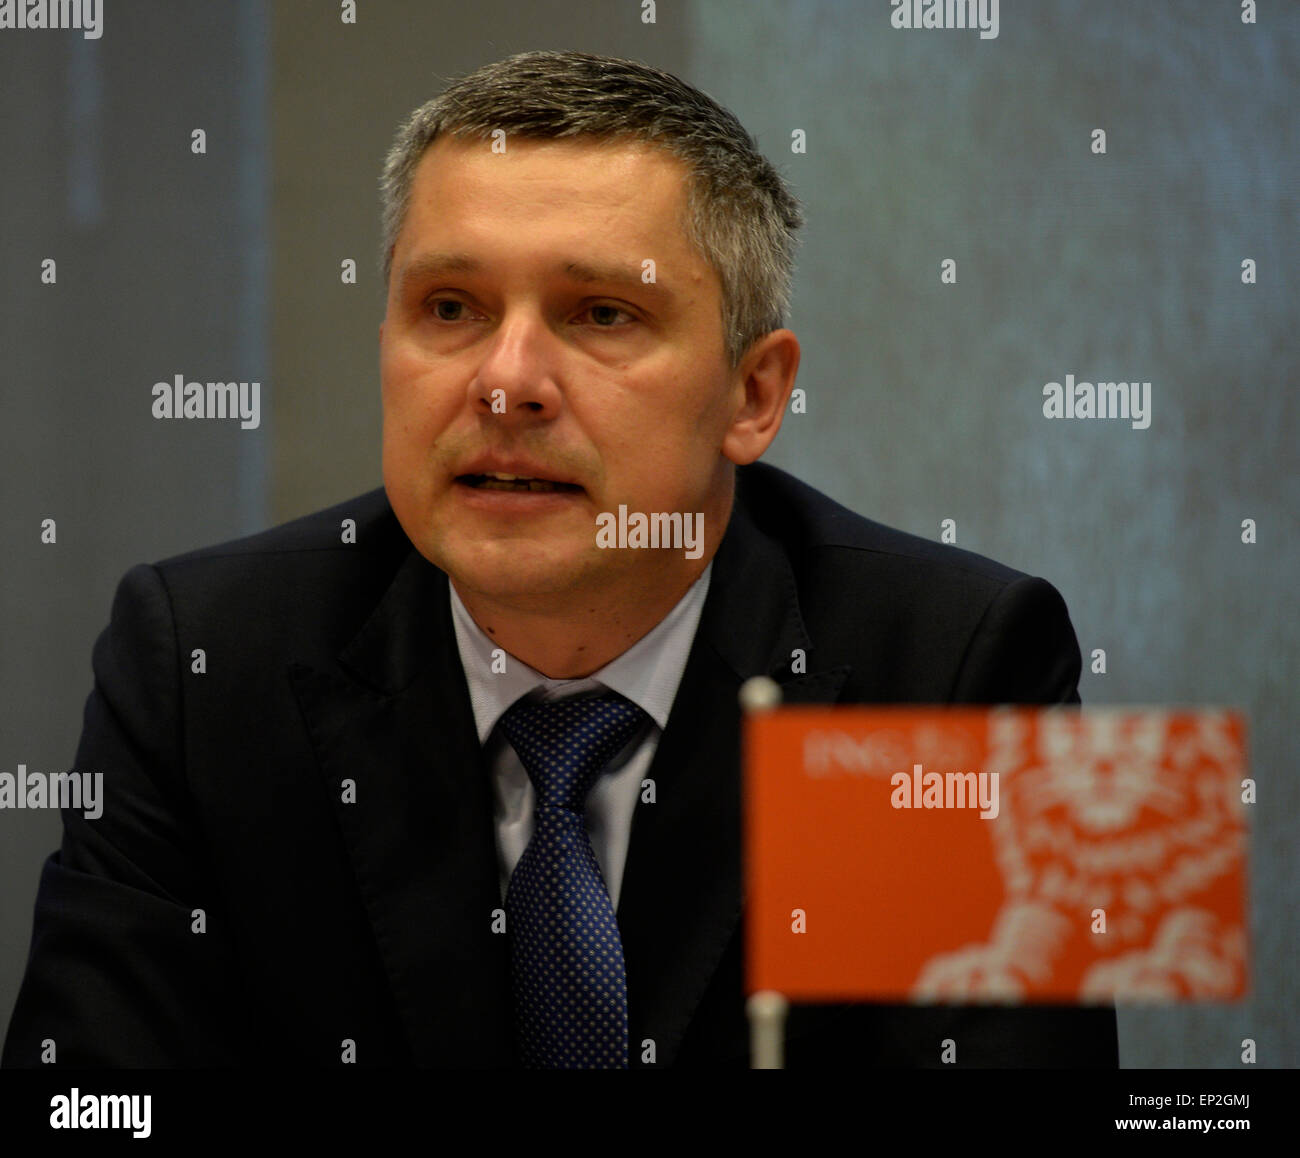 The Czech branch of ING Bank, one of minor financial institutions in the Czech Republic, showed net profit worth Stock Photo